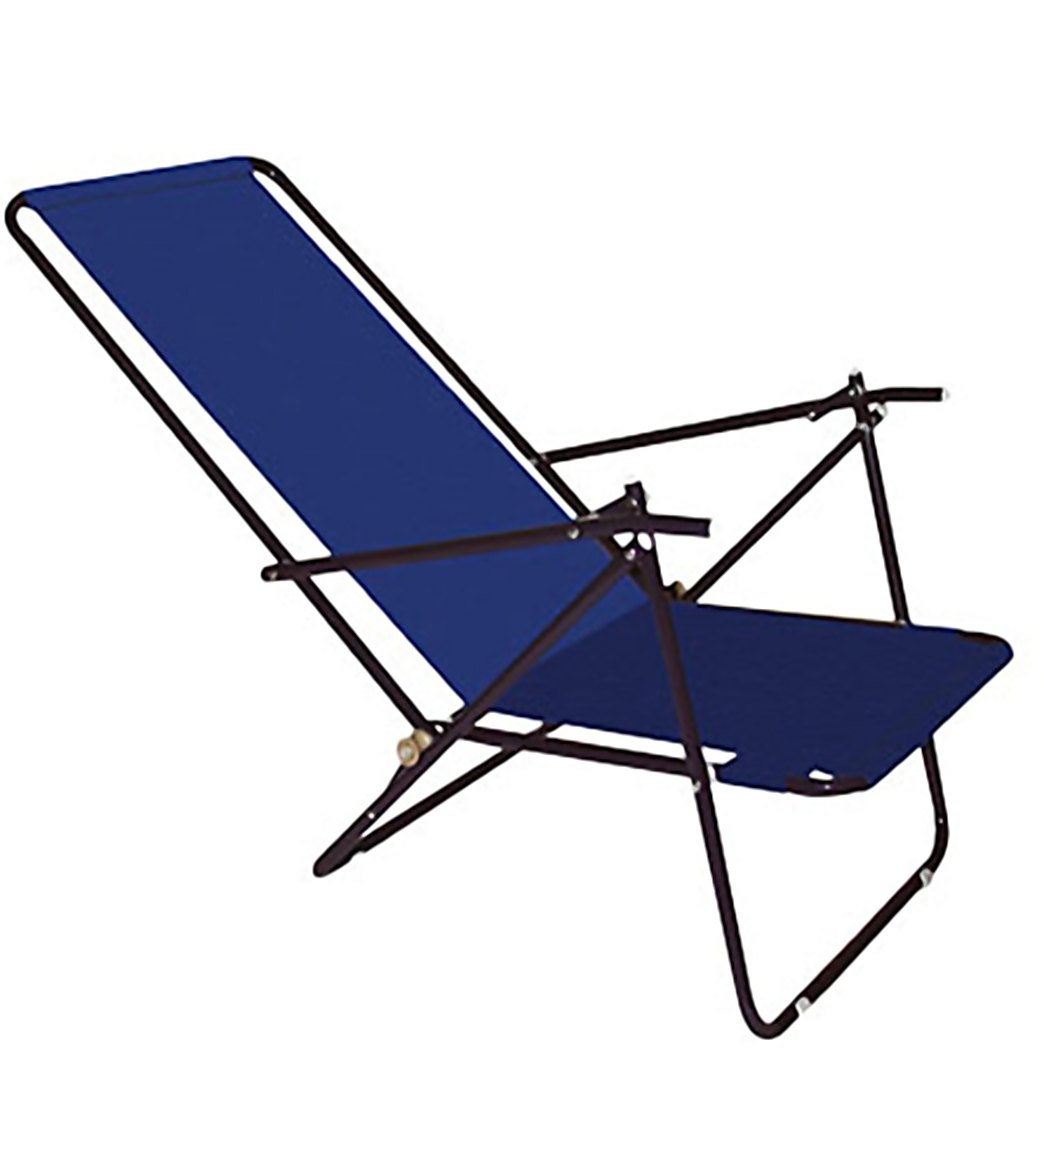 Wet Products Balboa Beach Chair Highback  sc 1 st  SwimOutlet.com & Wet Products Balboa Beach Chair Highback at SwimOutlet.com